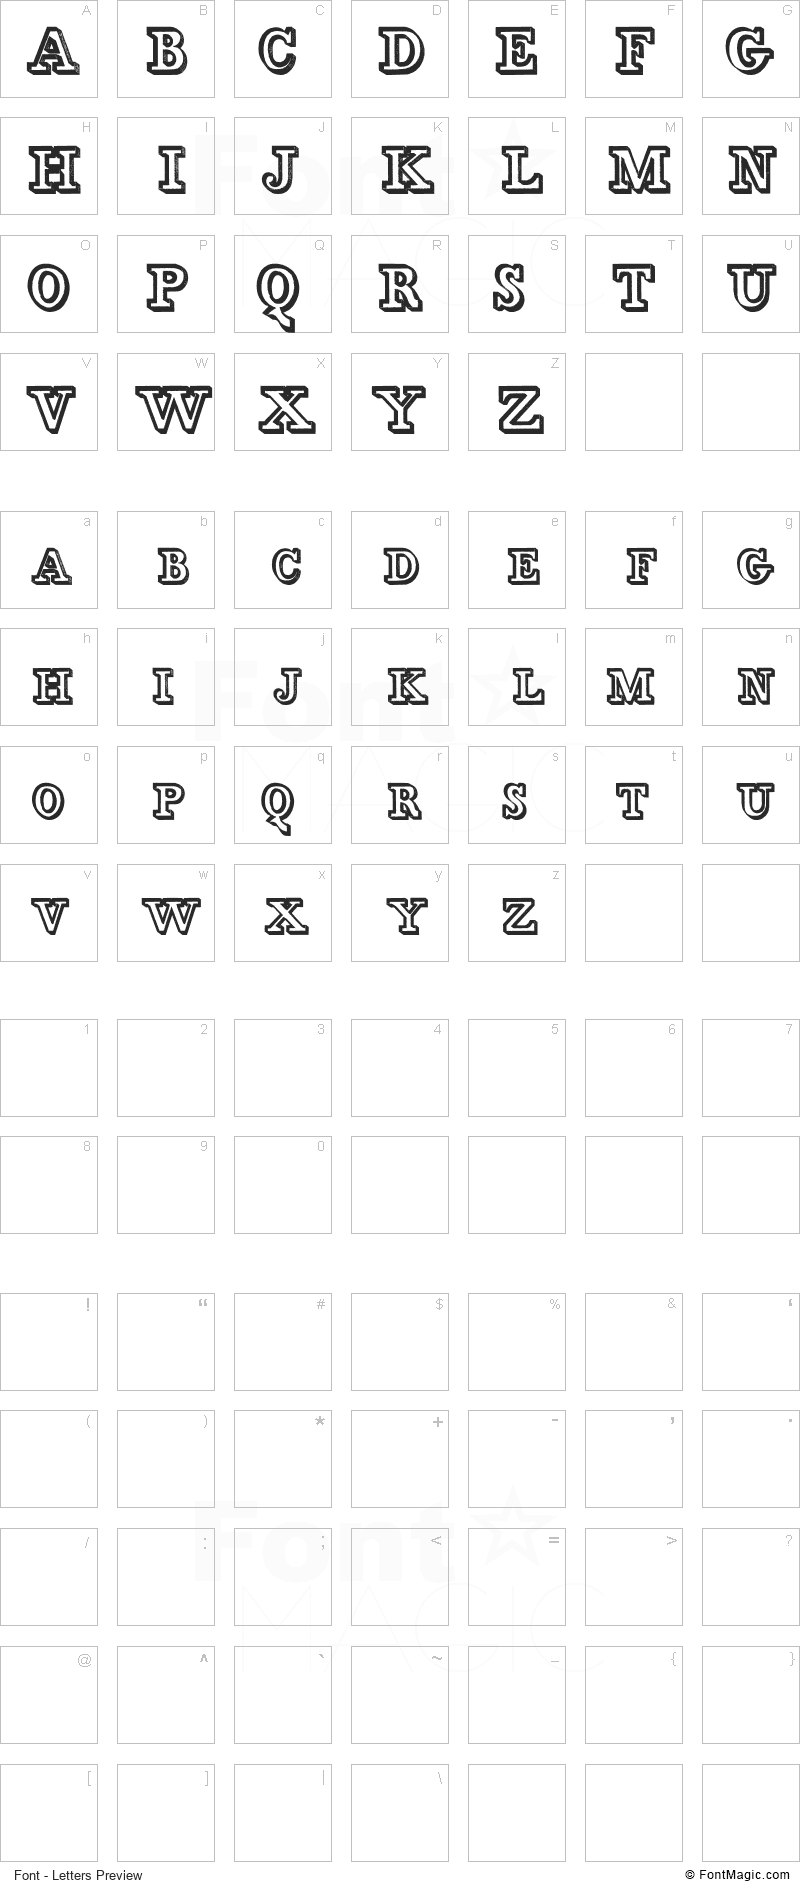 Egidia Font - All Latters Preview Chart